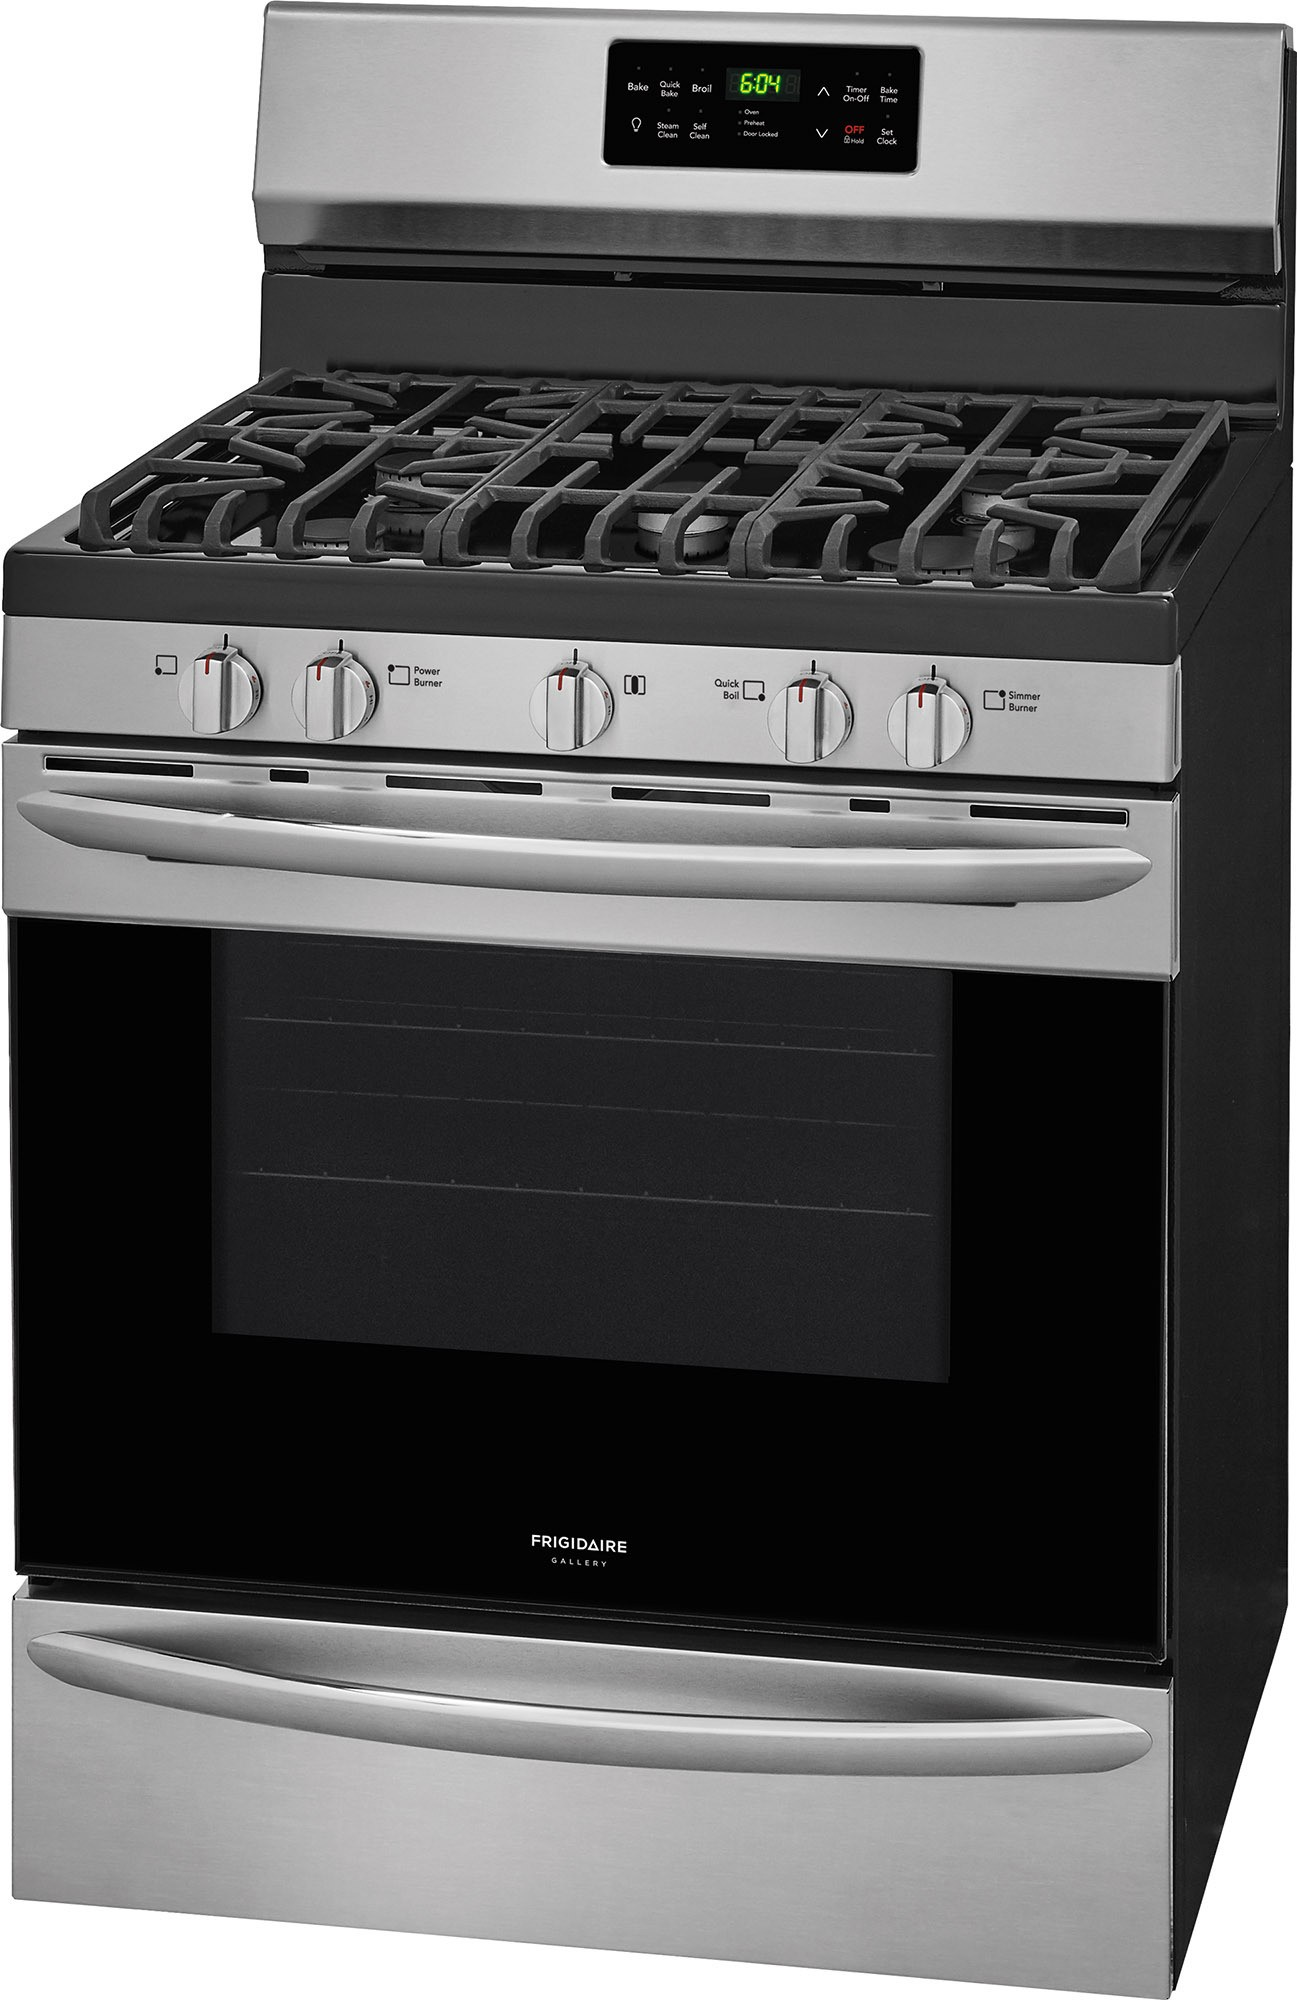 Fggf3036tf Frigidaire Gallery 30 Quot Freestanding Gas Range